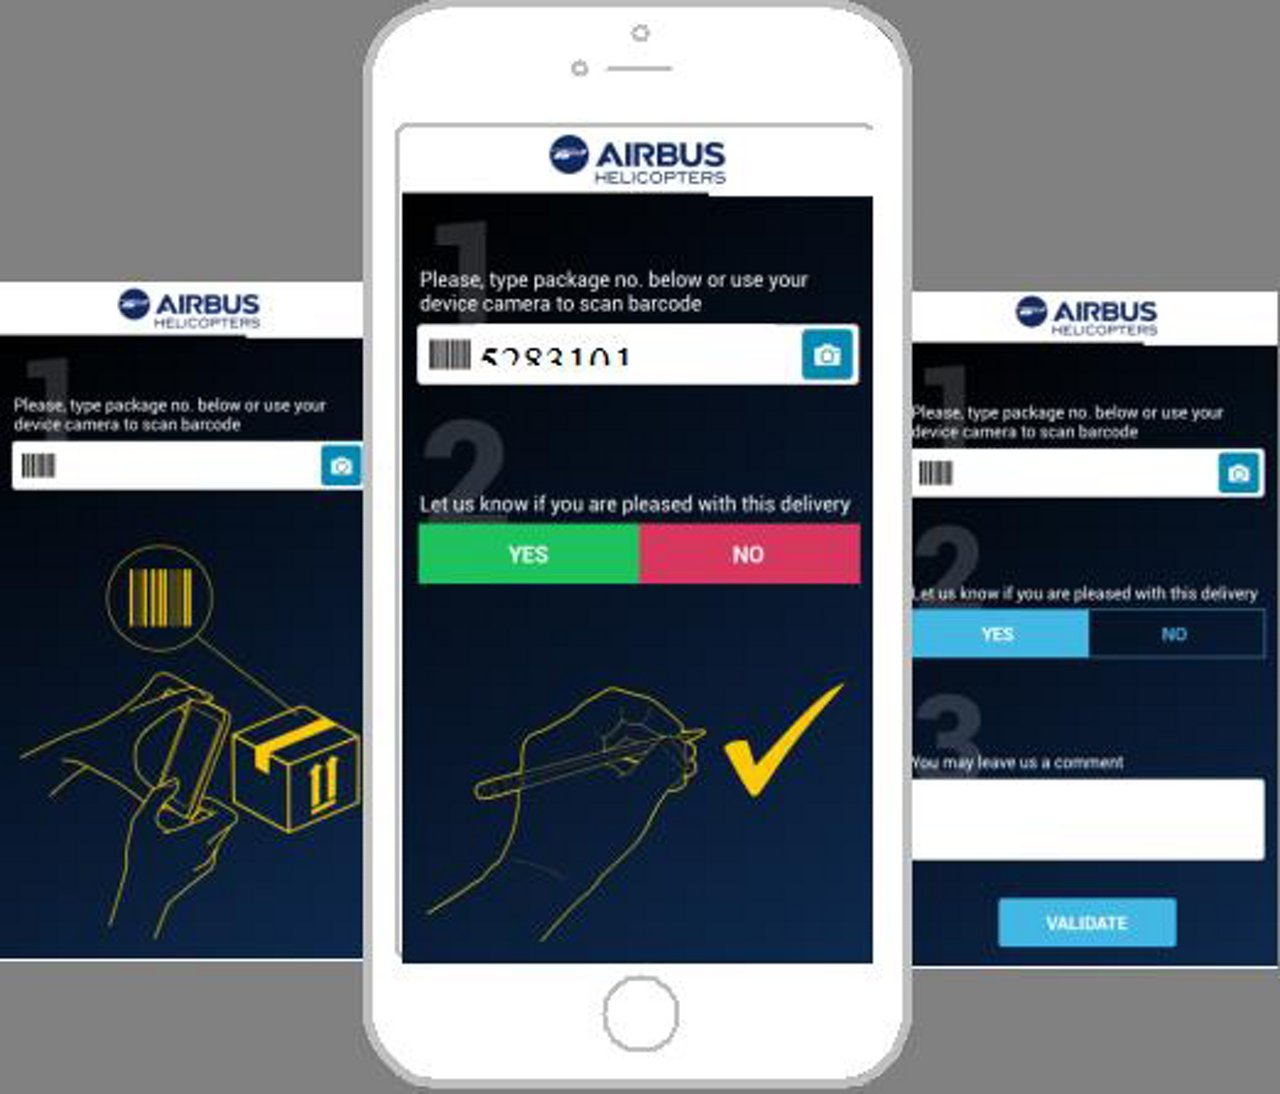 Airbus uses QR codes to collect customer feedback on helicopter spare part deliveries